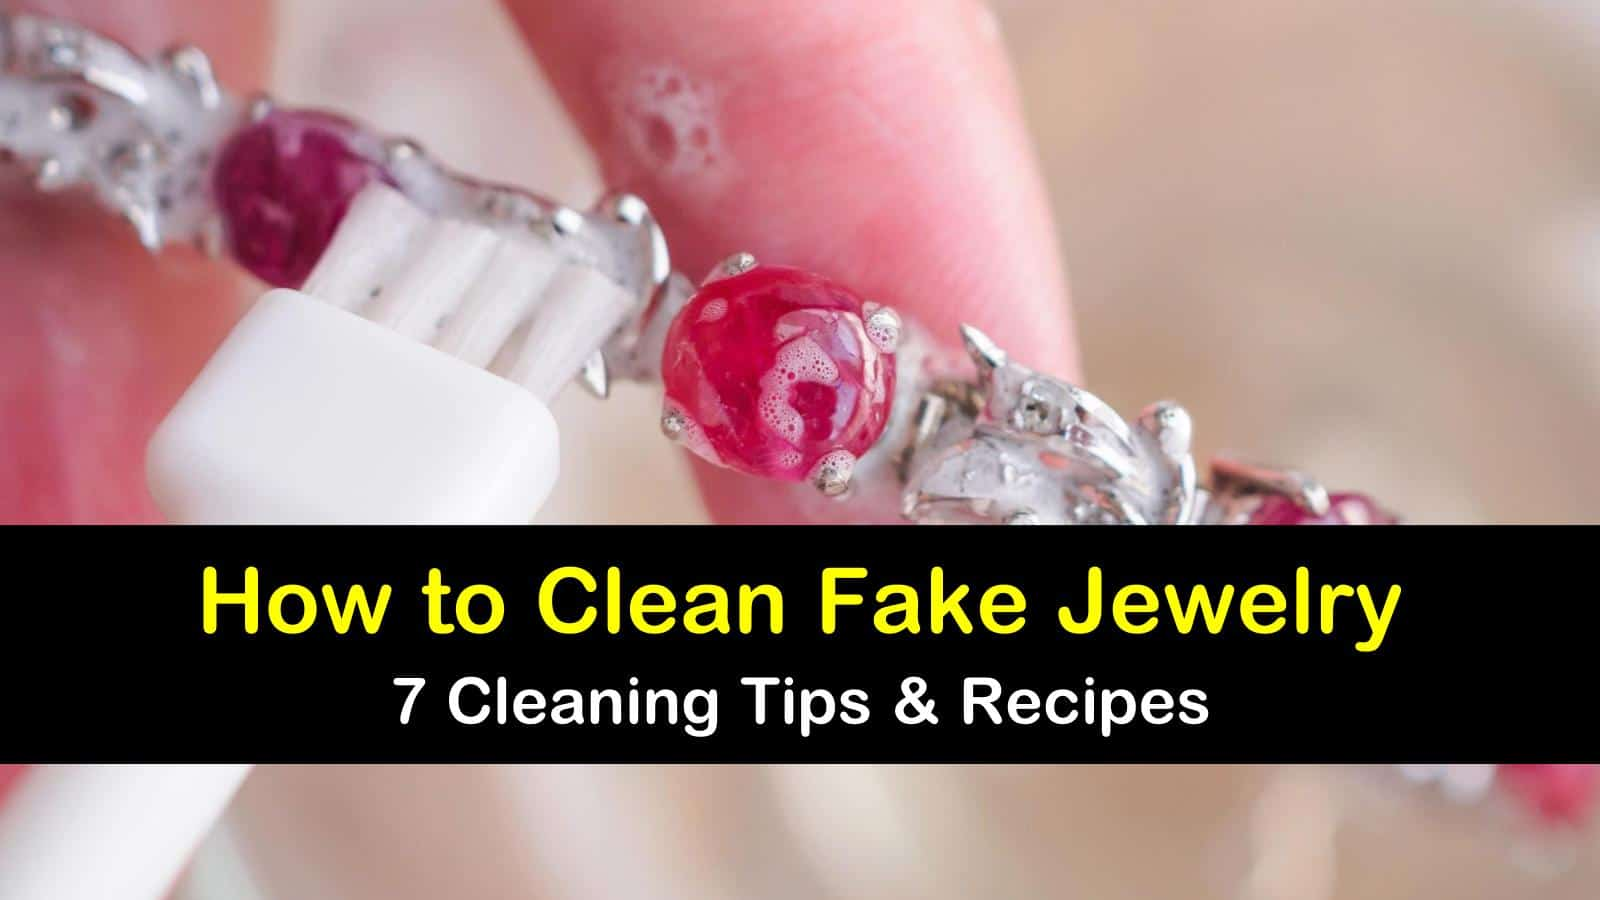 how to clean fake jewelry titleimg1